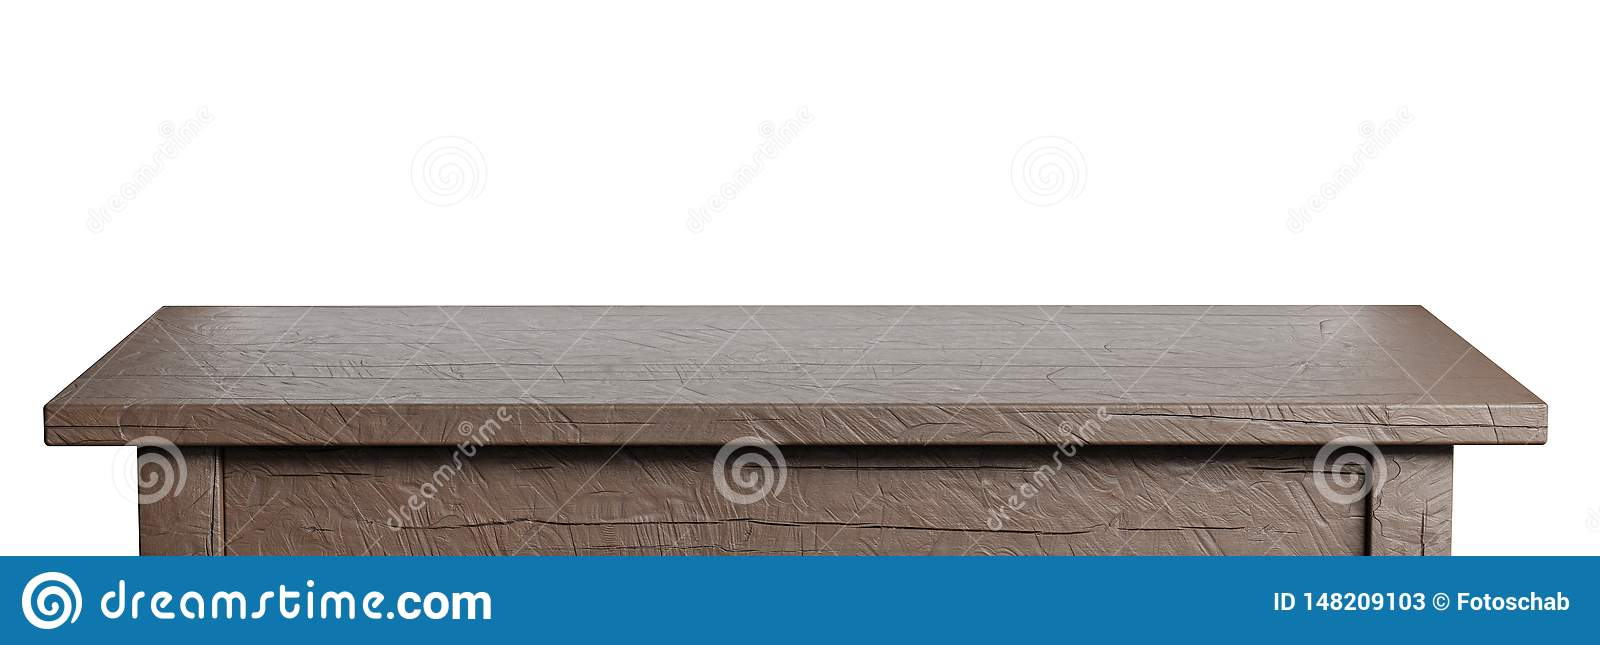 Rustic, empty table isolated on white. Clipping path included. Suitable for product display. 3D render image.